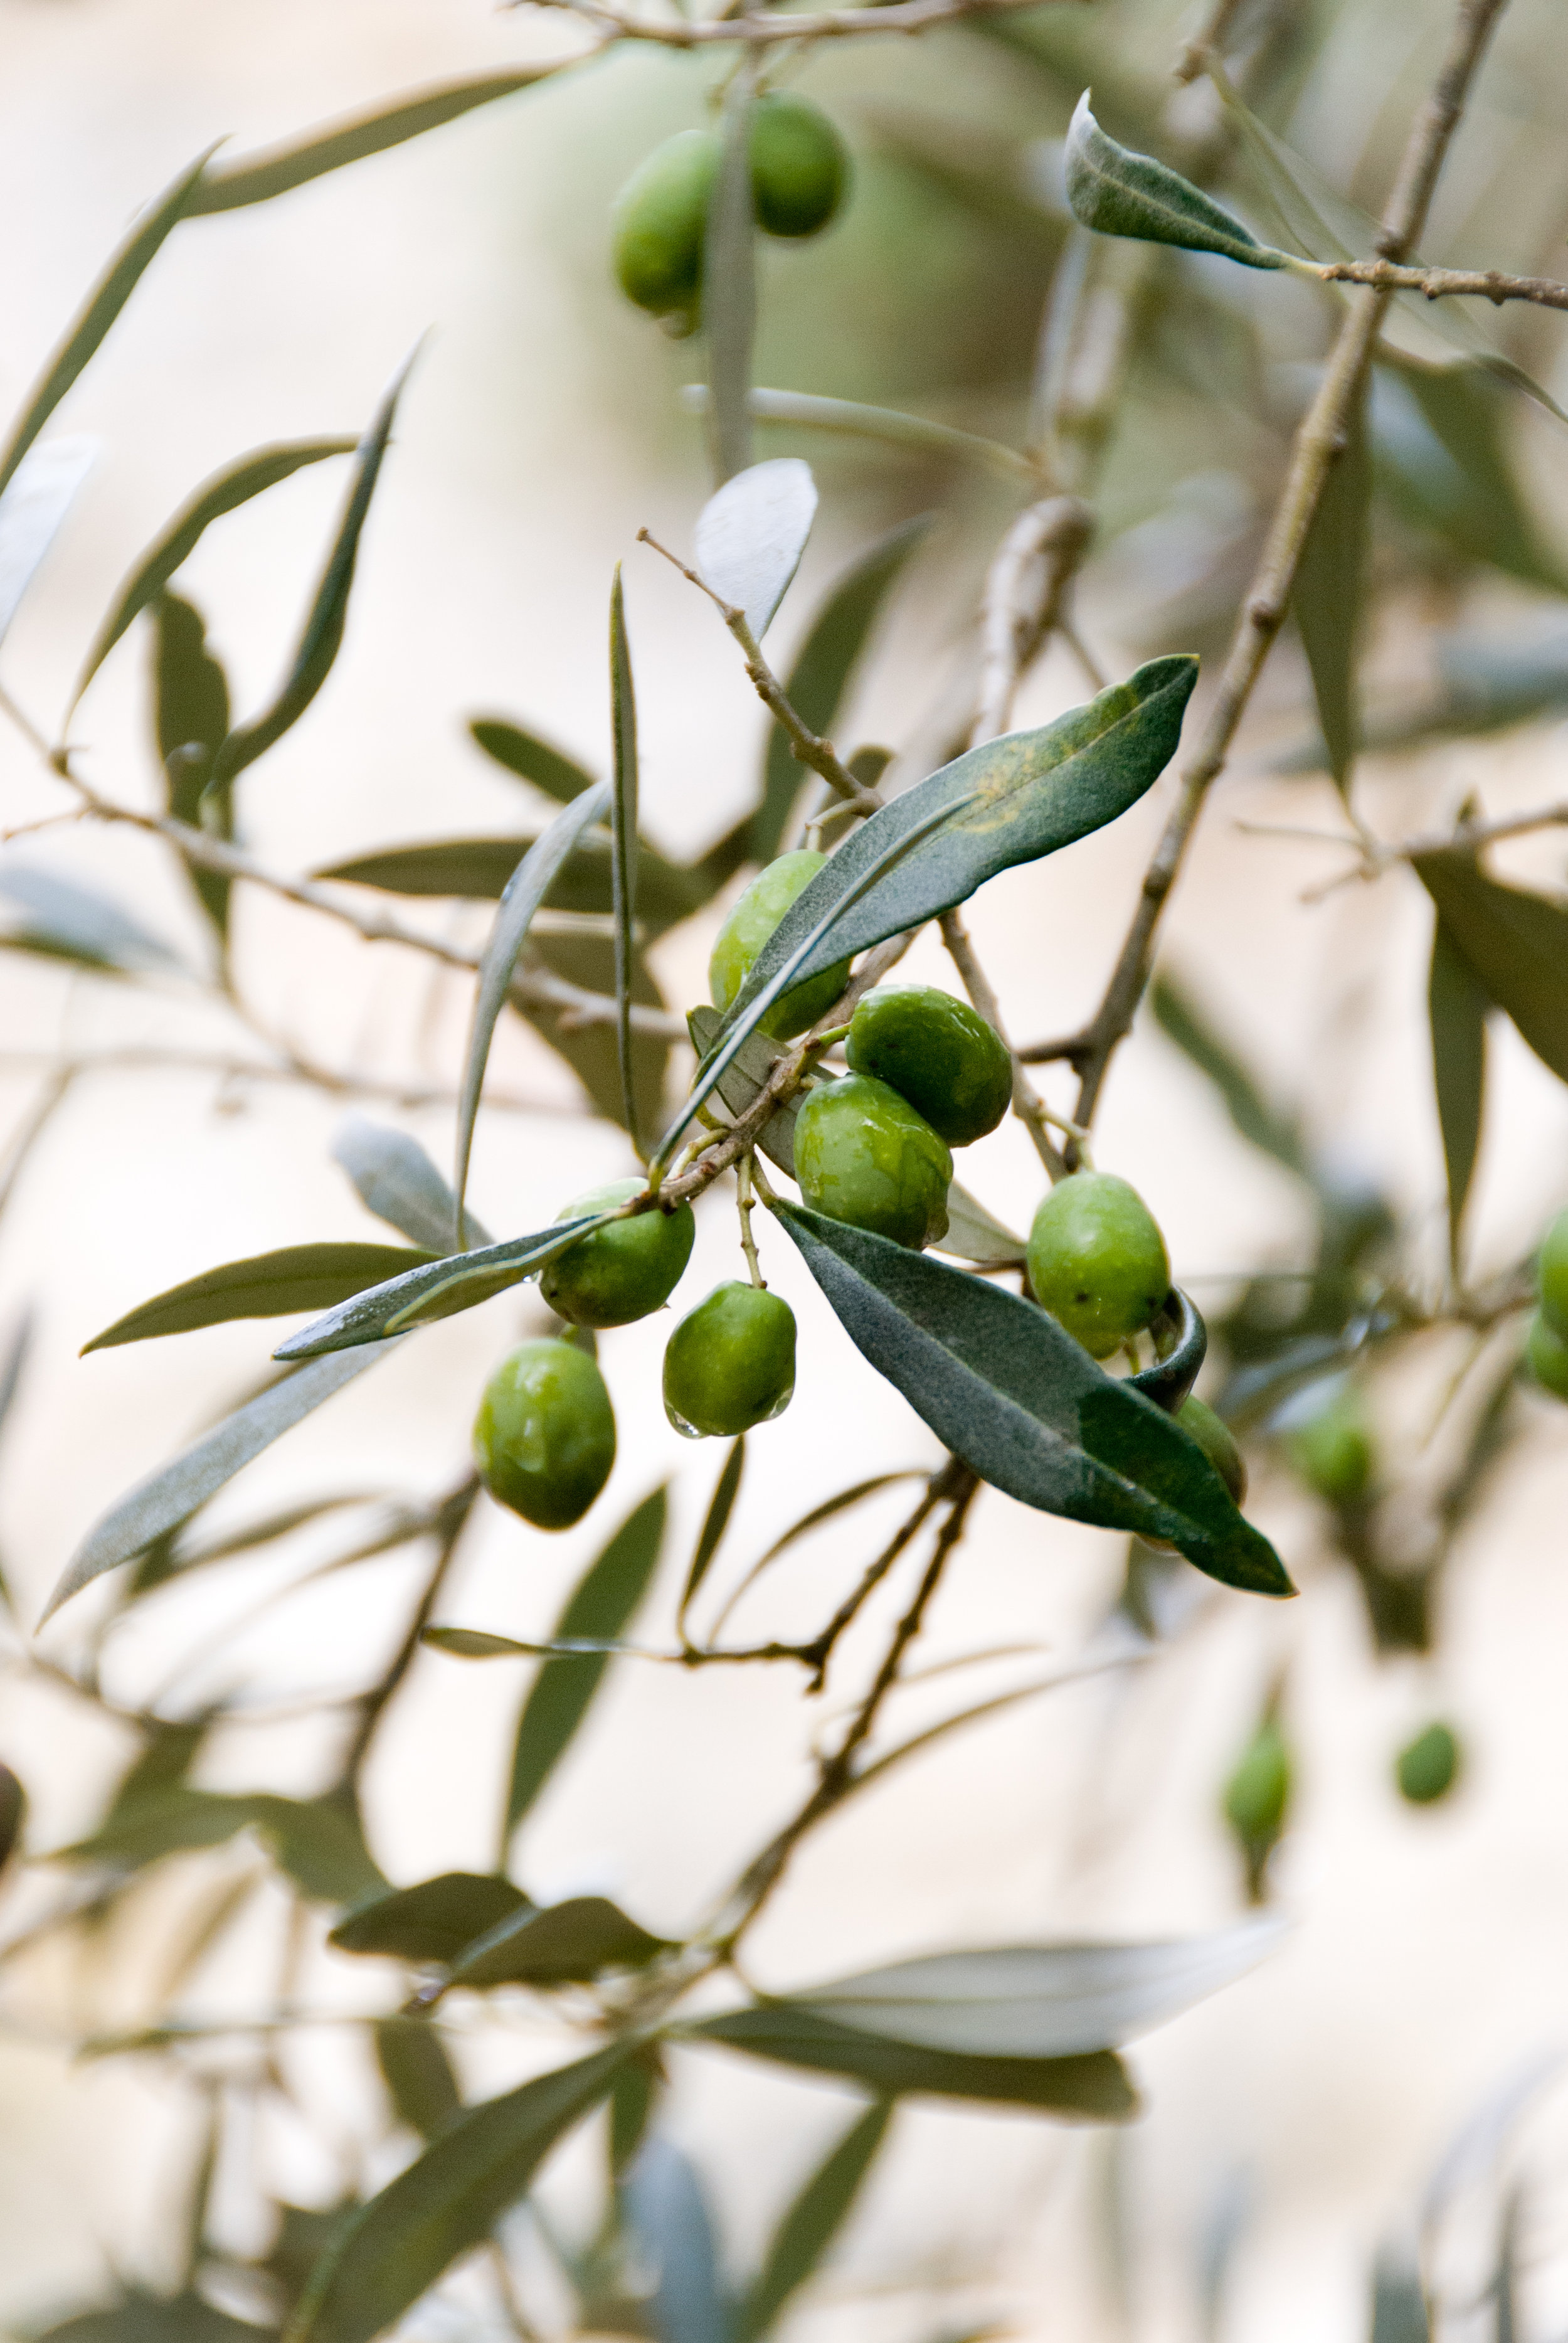 Olives growing on the tree. Their nutrient-rich oil has been the basis of beauty treatments for centuries.